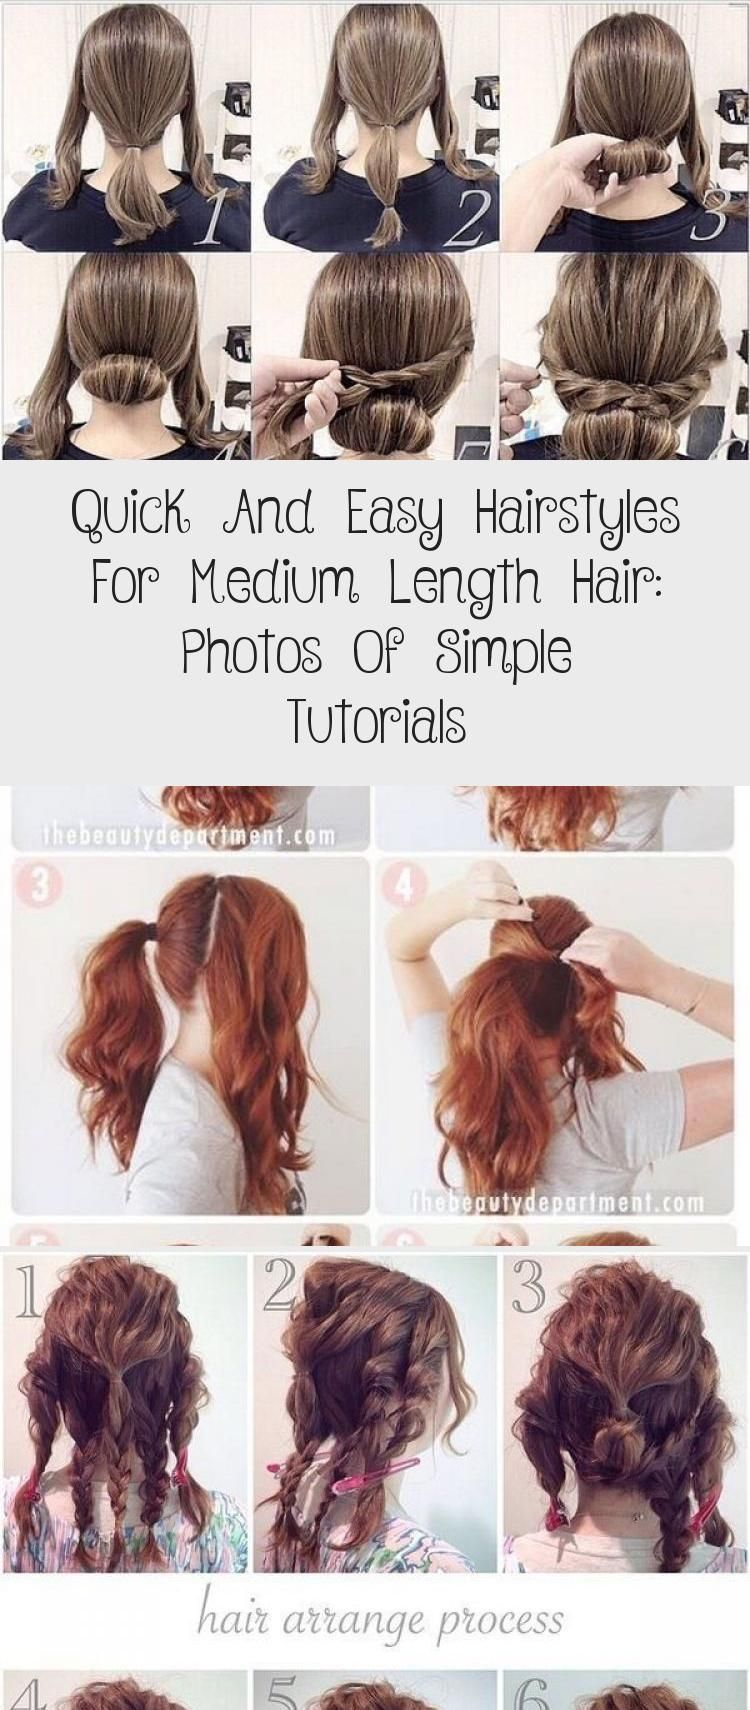 Quick And Easy Hairstyles For Medium Length Hair Photos Of Simple Tutorials In 2020 Medium Length Hair Styles Easy Hairstyles Hair Styles